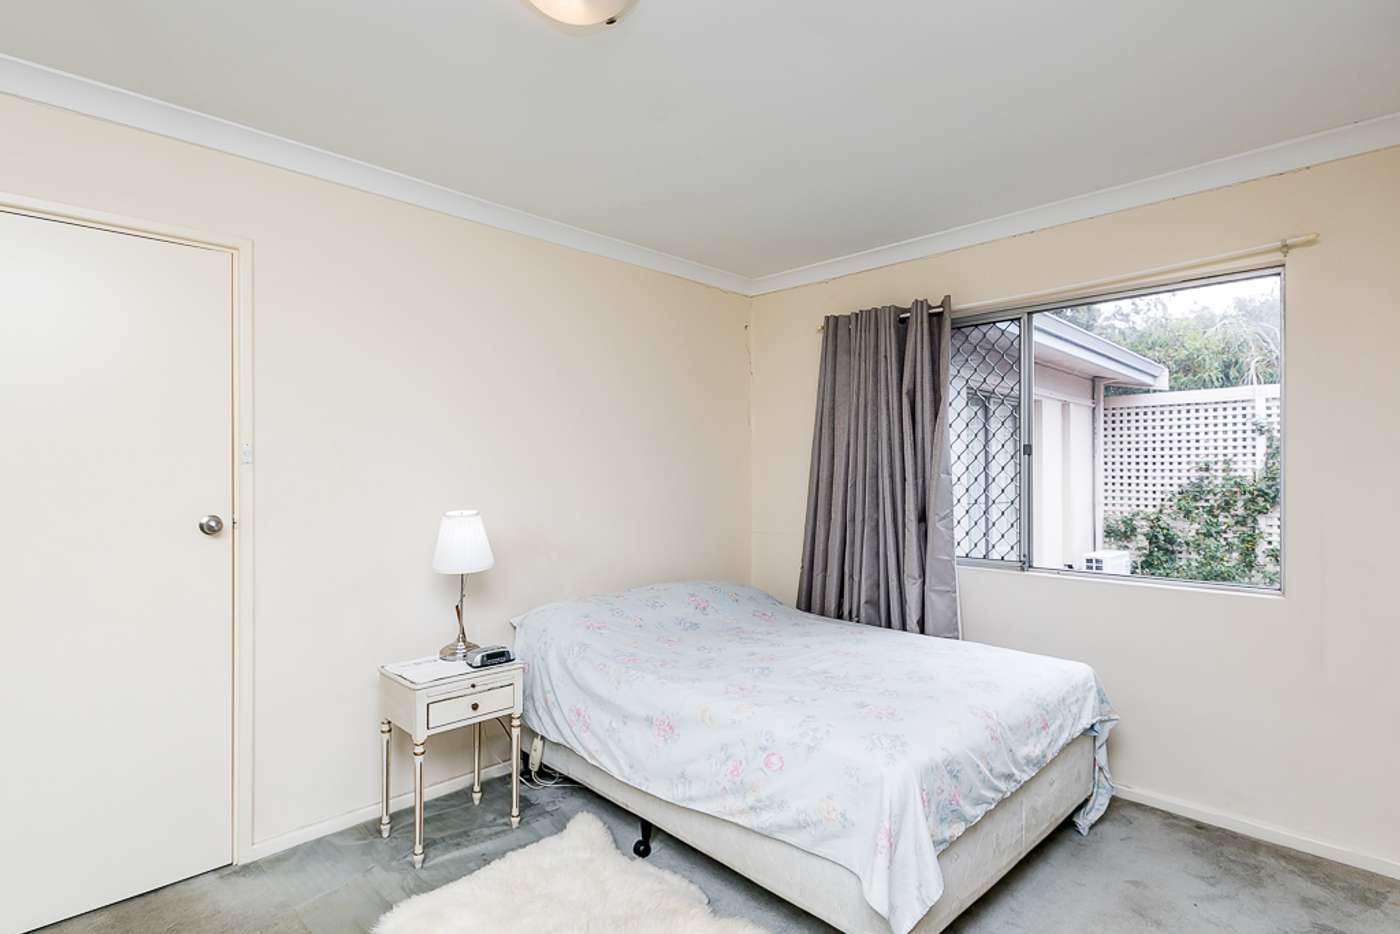 Seventh view of Homely house listing, 18 Sutherland Cl N, Guildford WA 6055